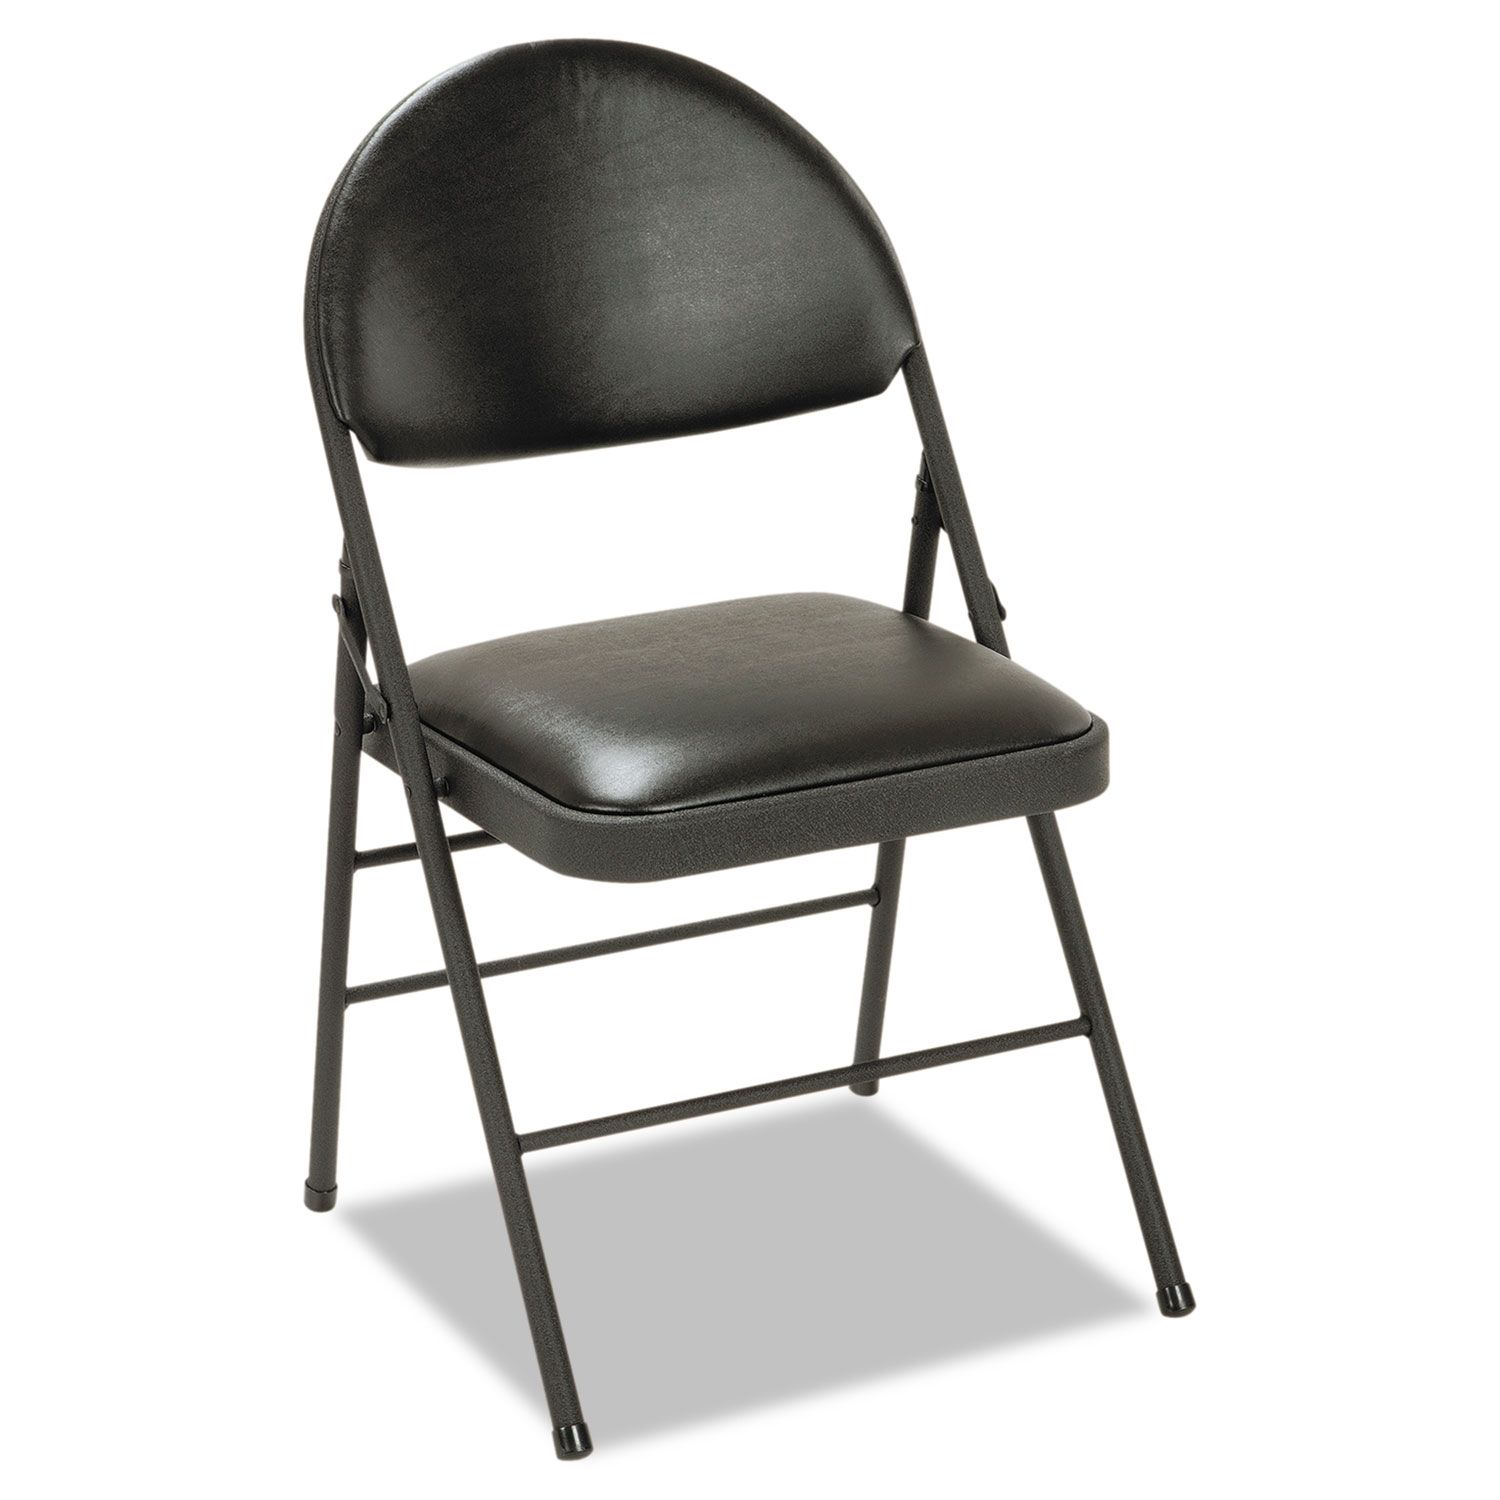 Marine Aluminum Folding Chairs